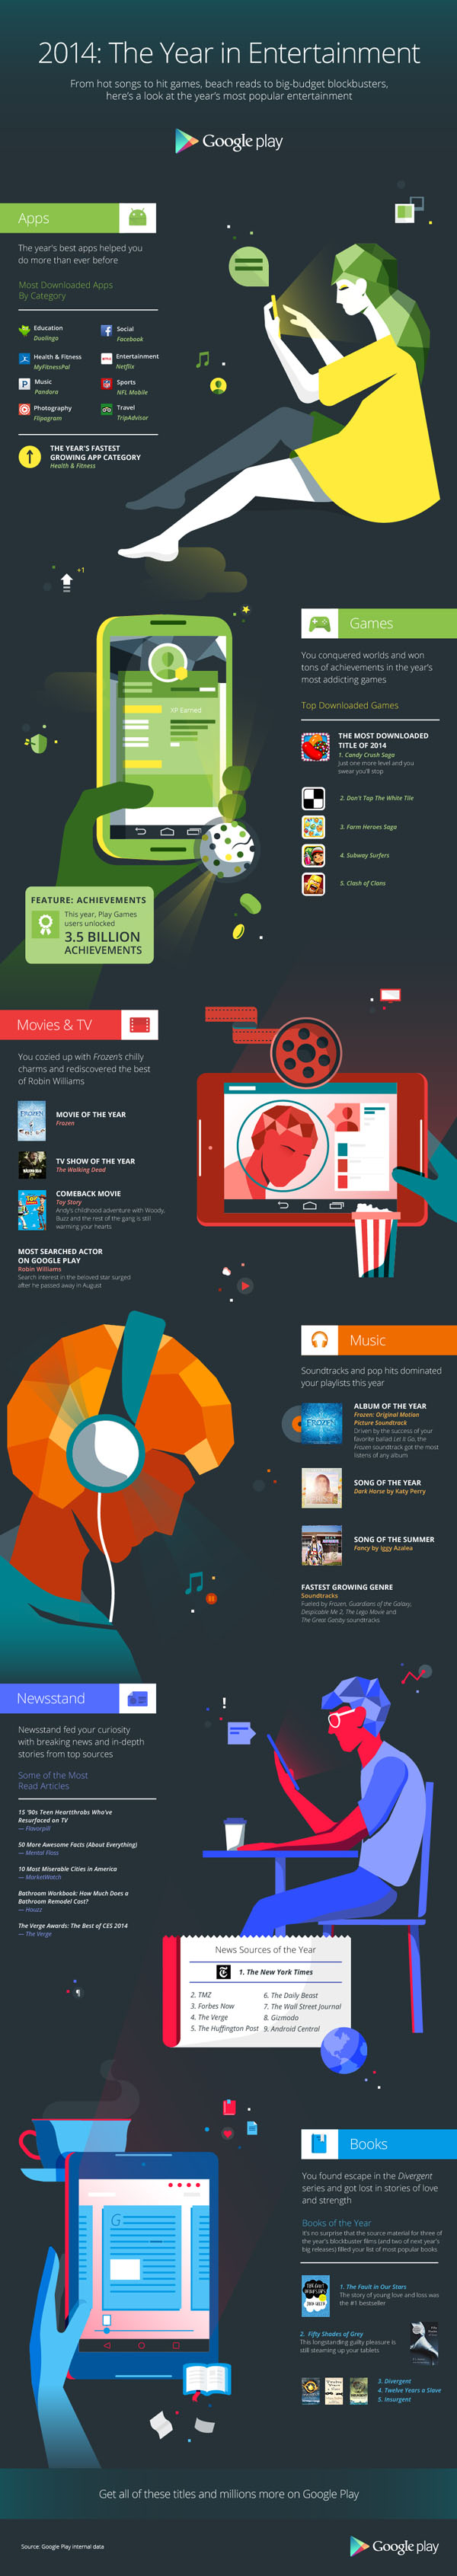 GooglePlay_EOY-infographic_v7